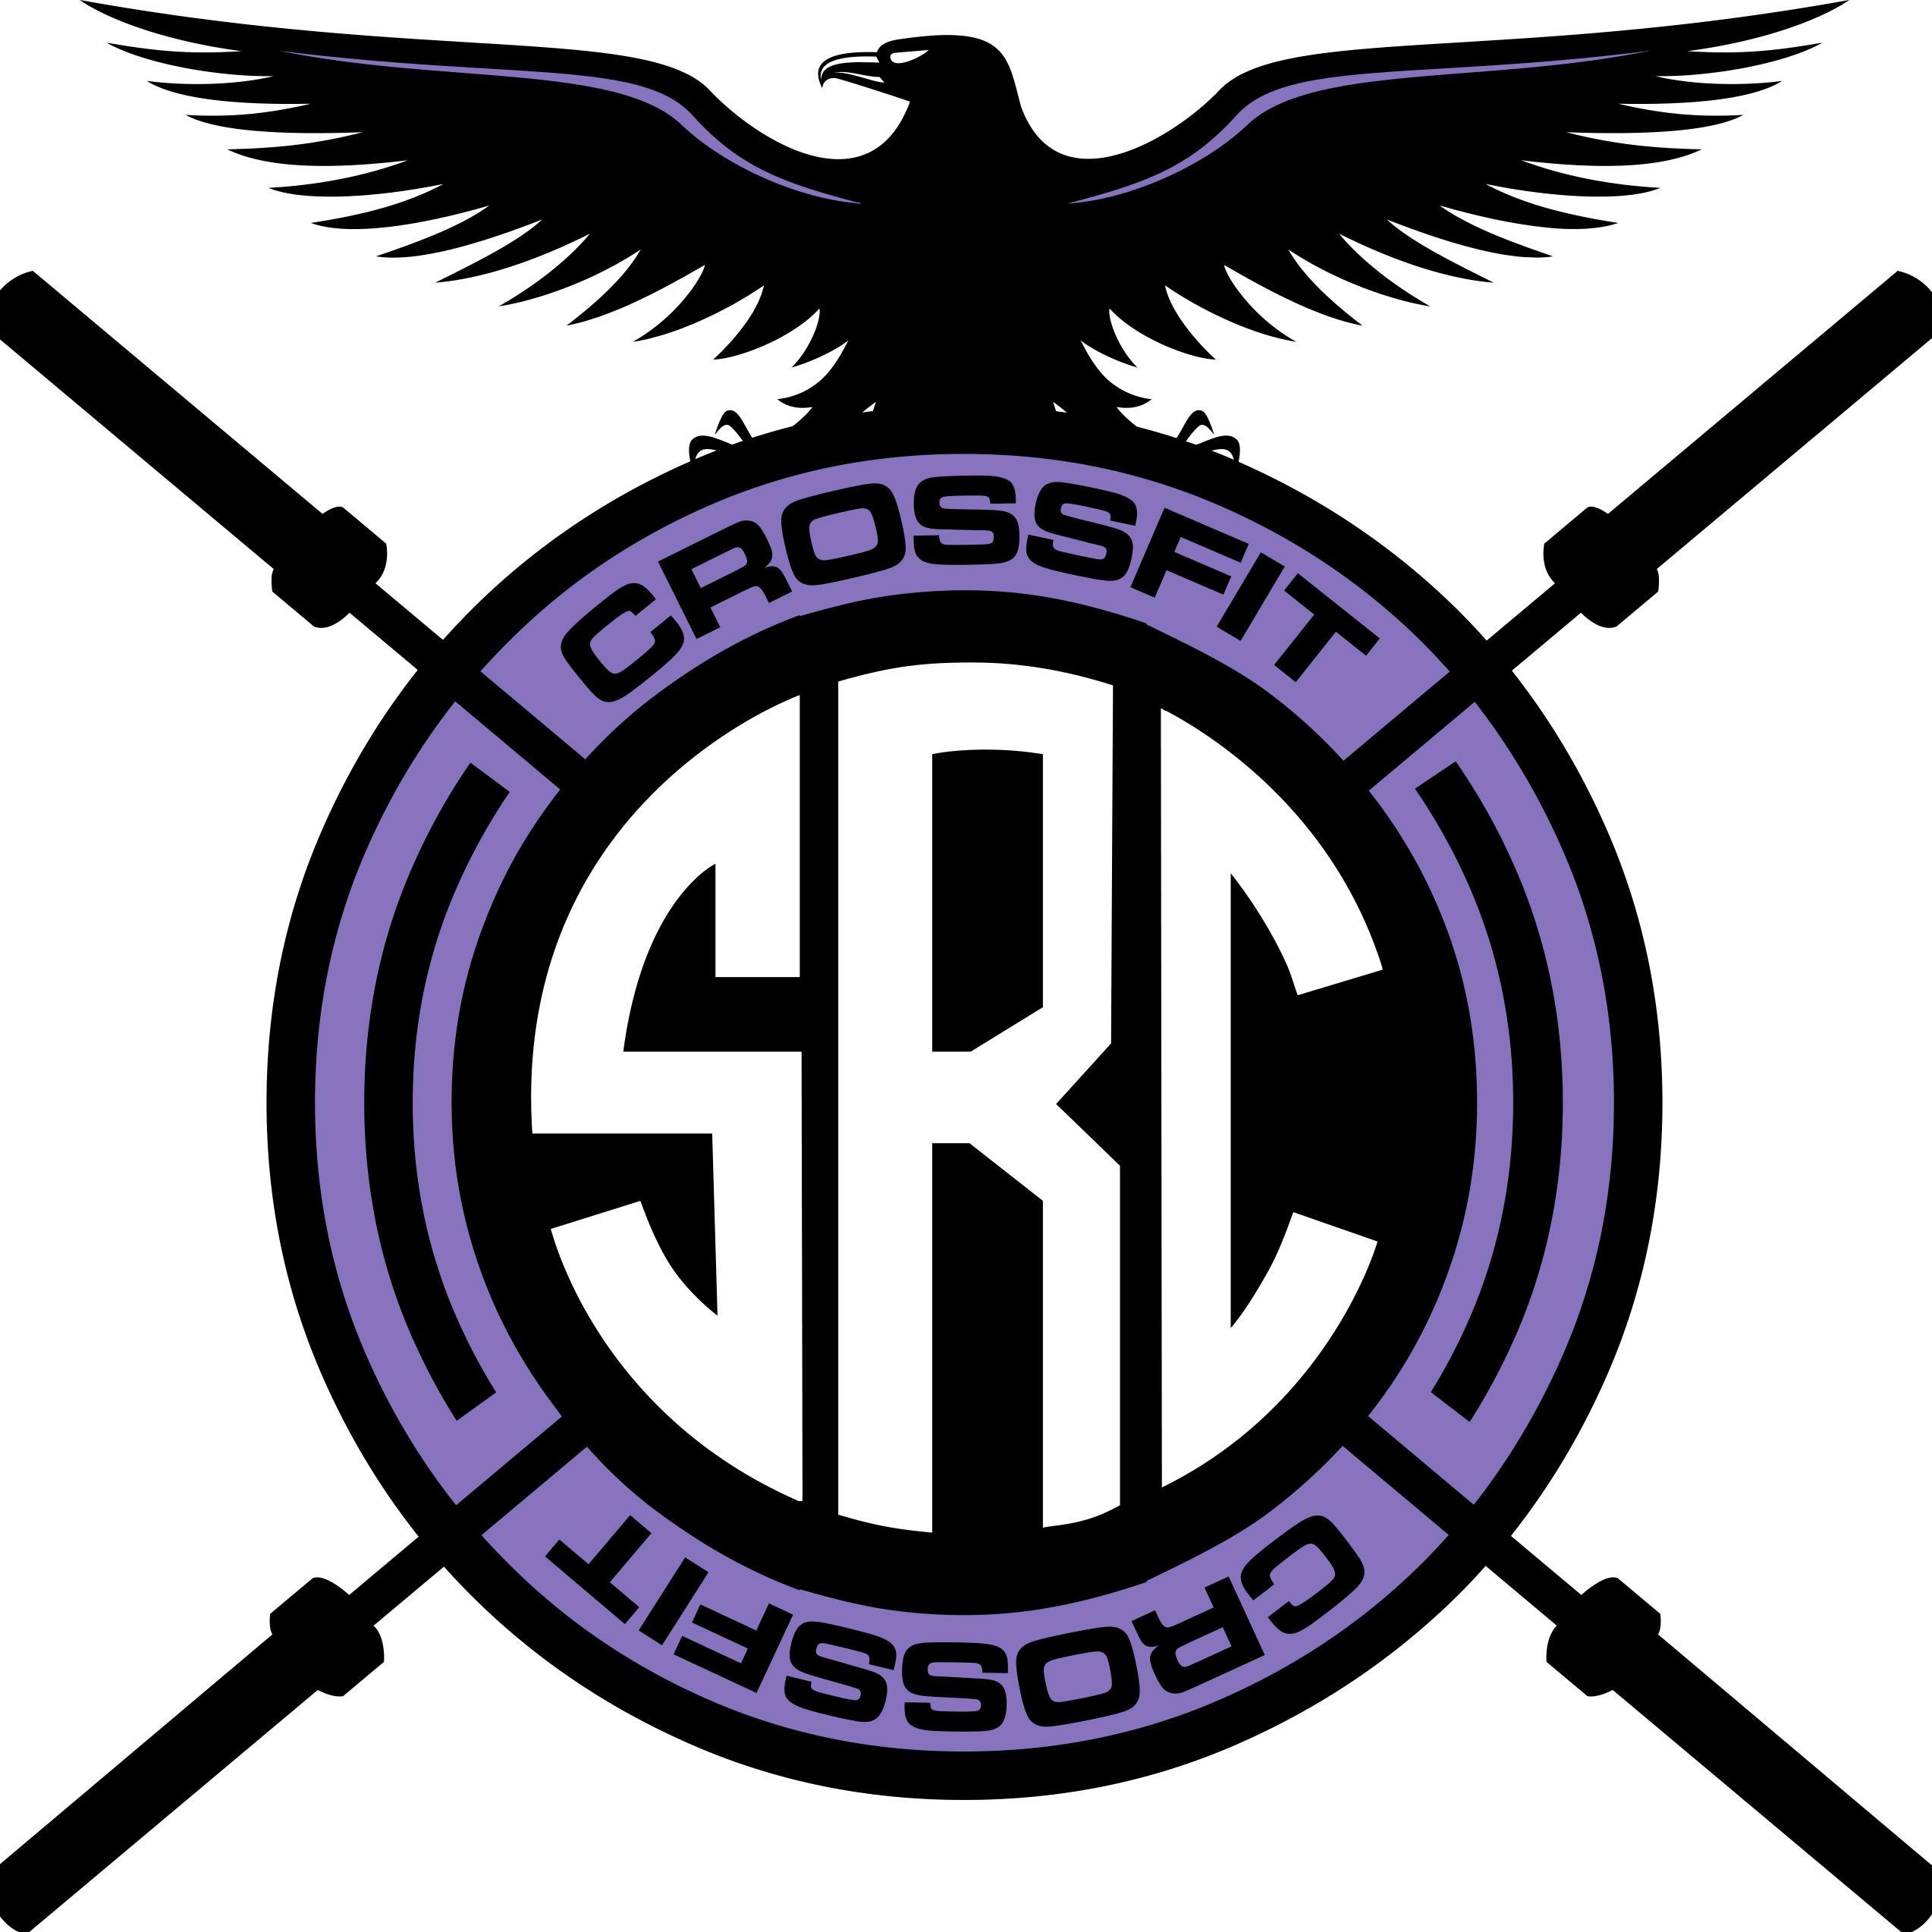 Crossfit Src On Twitter Age Is A Number Not A Limitation Your